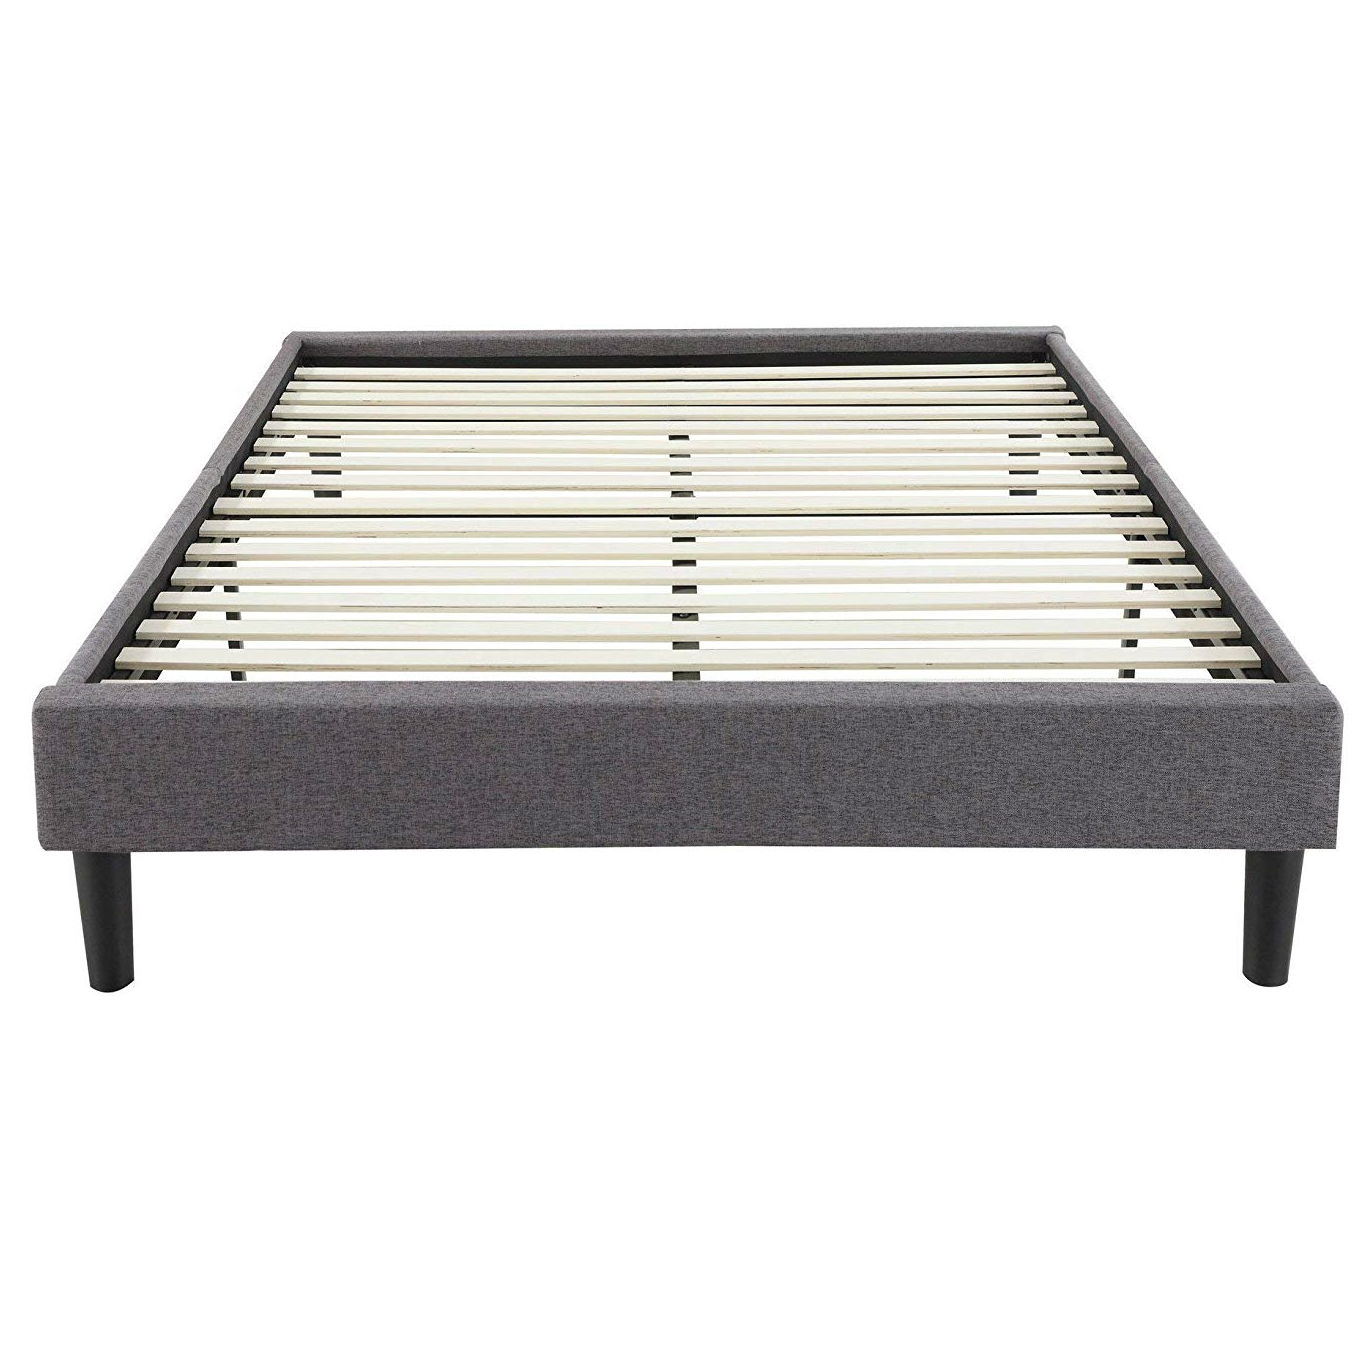 Full Size Upholstered Platform Bed Frame With Padded Grey Upholstery Fastfurnishings